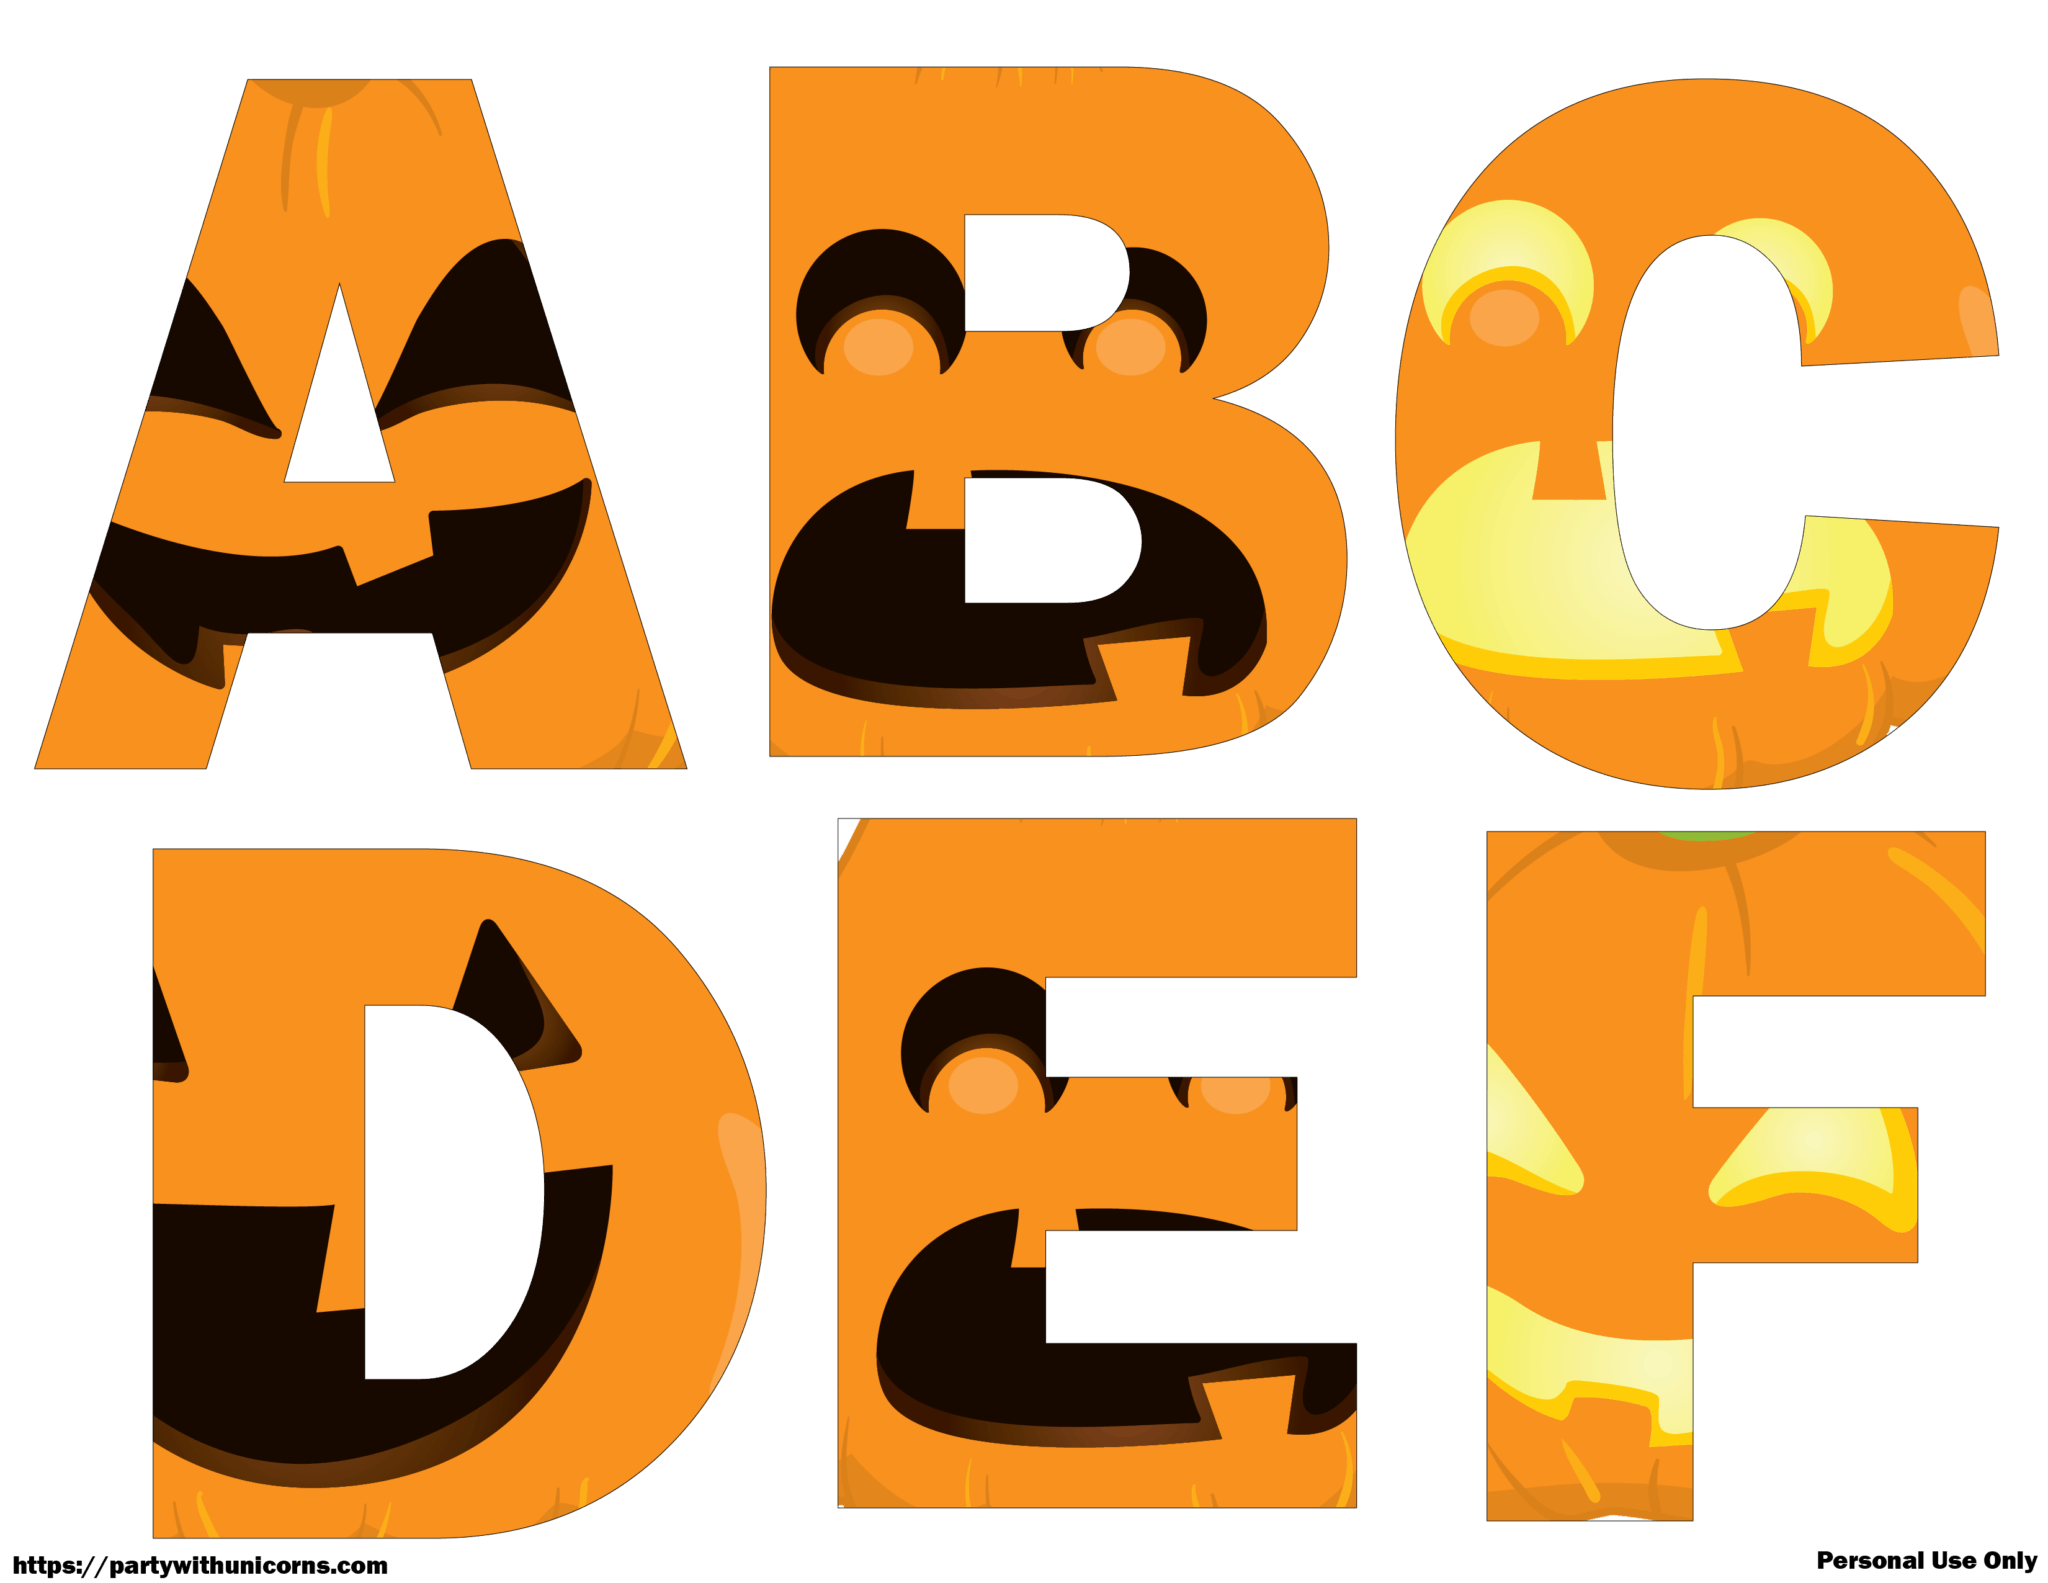 photo relating to Printable Jackolantern named Halloween Letters Printable - Jack o Lantern Faces